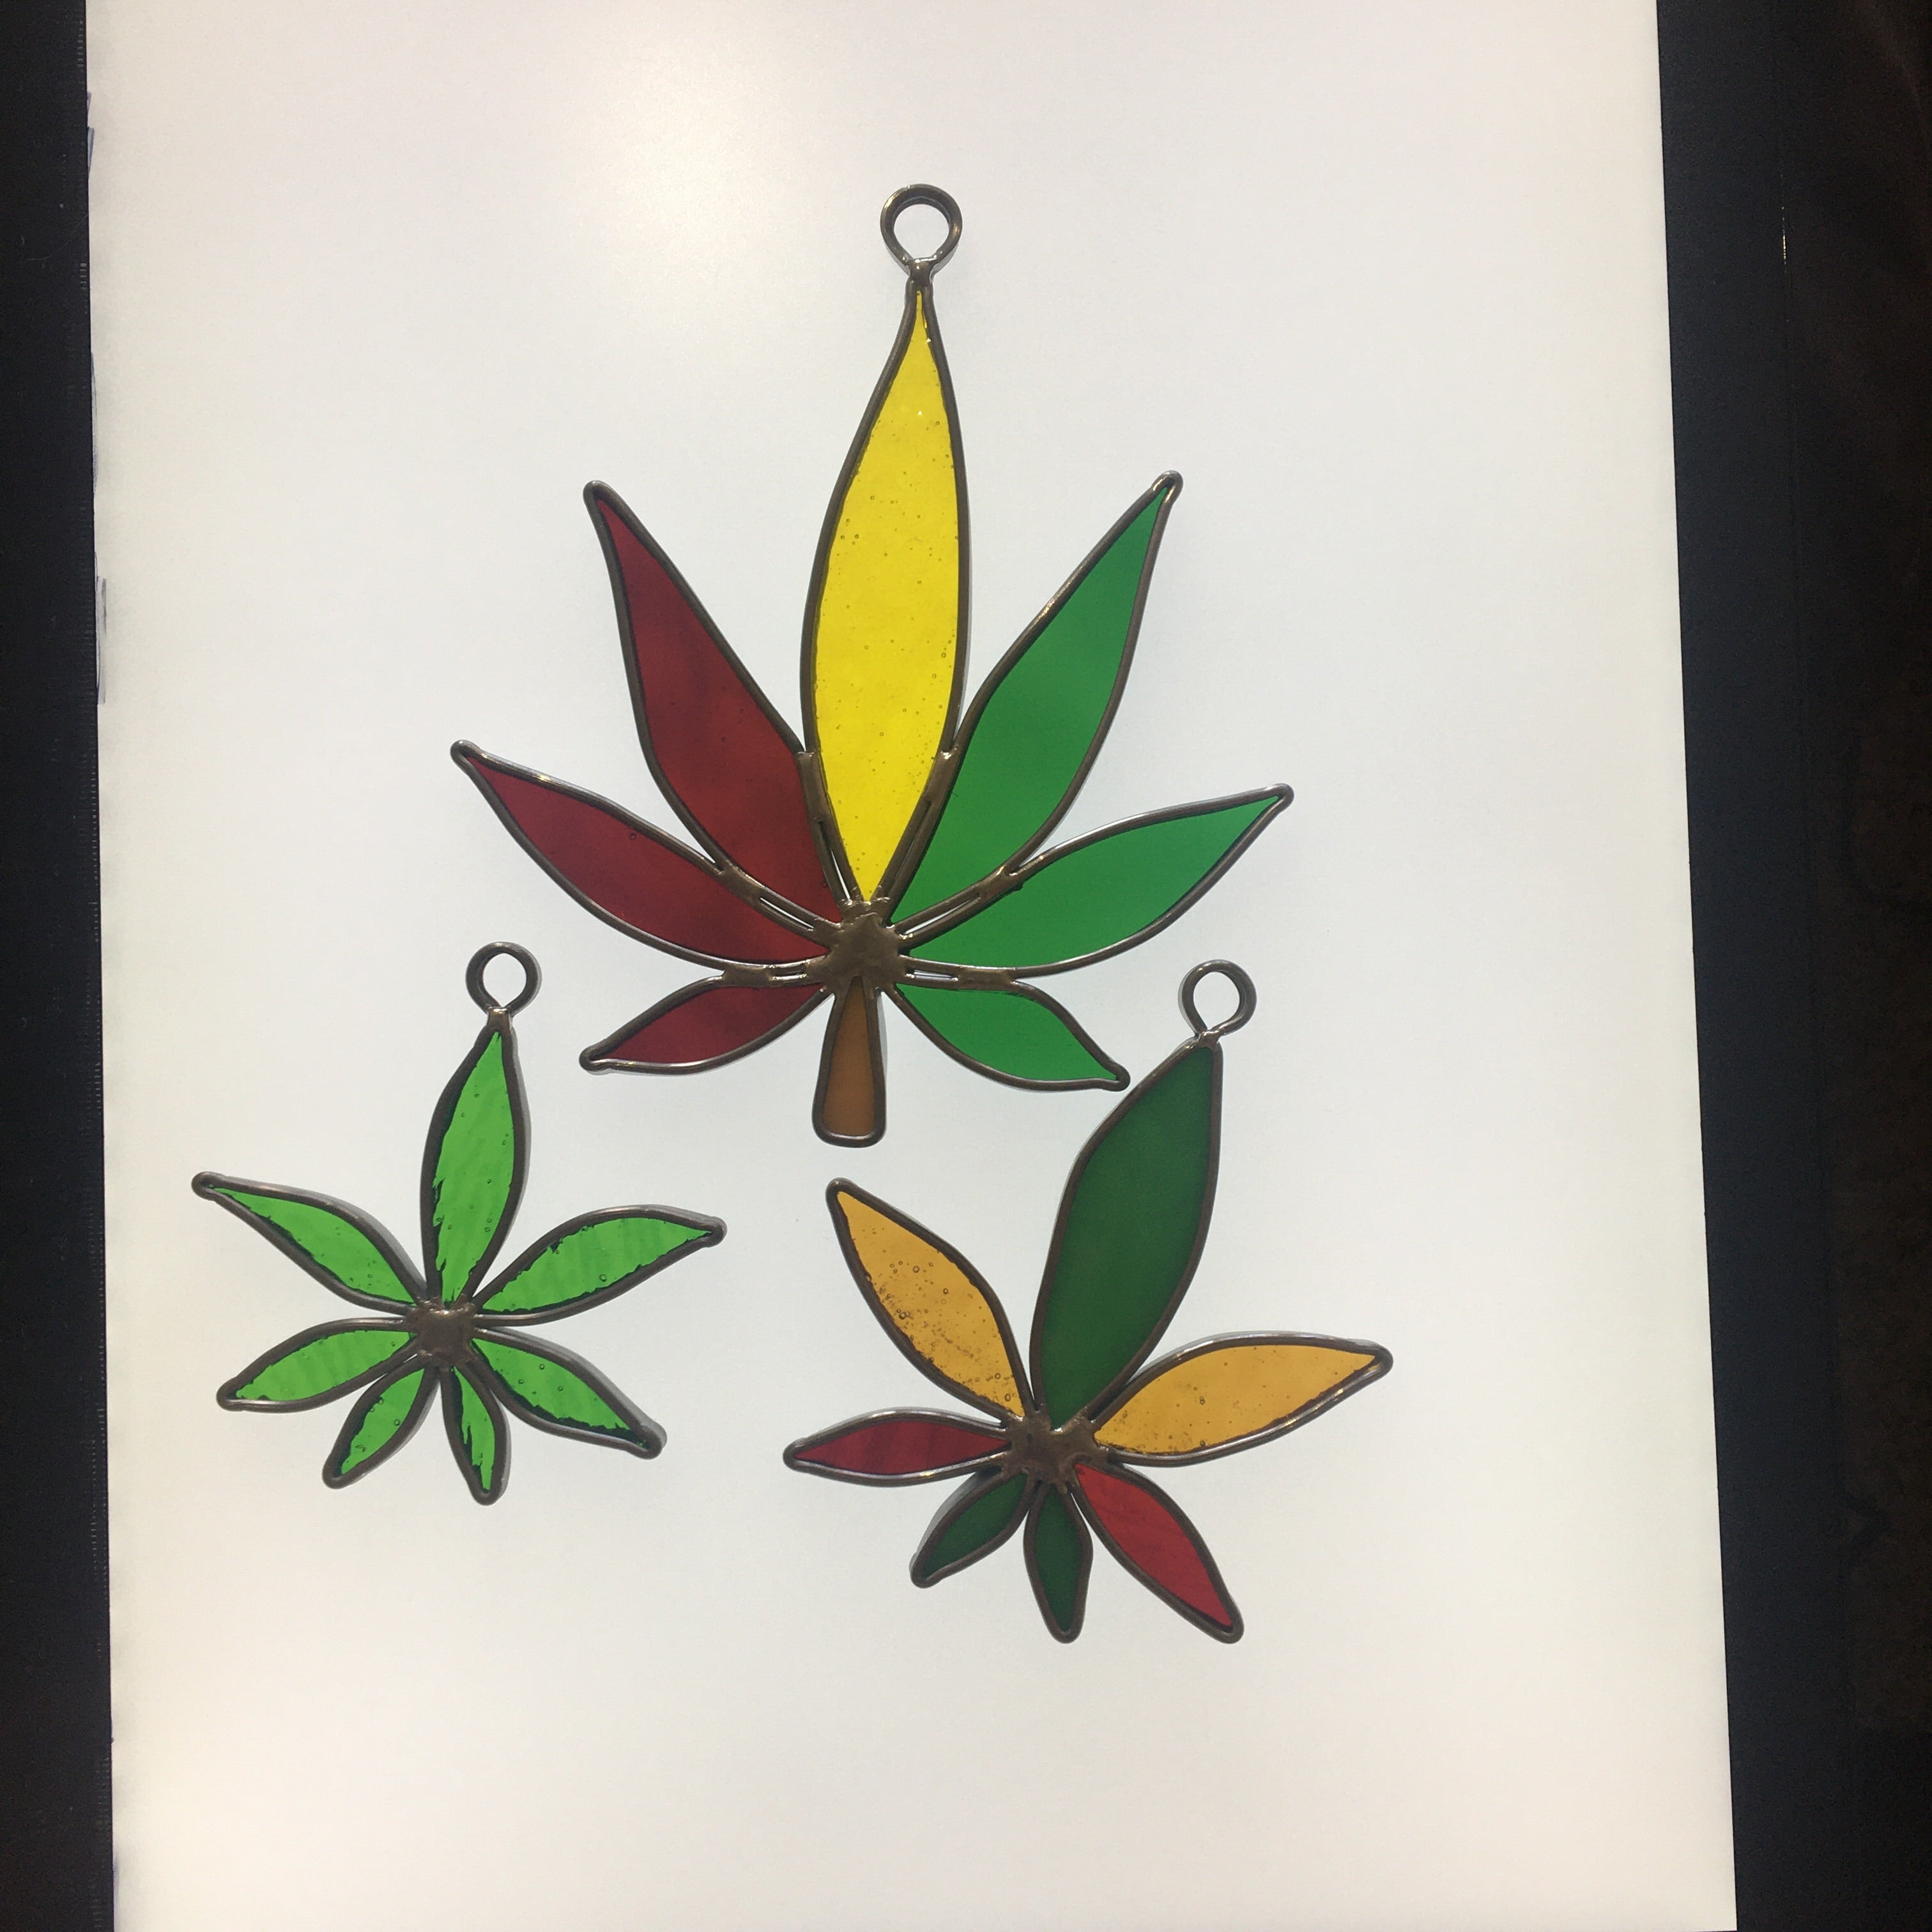 Stained Glass Hemp Leaf Window Art